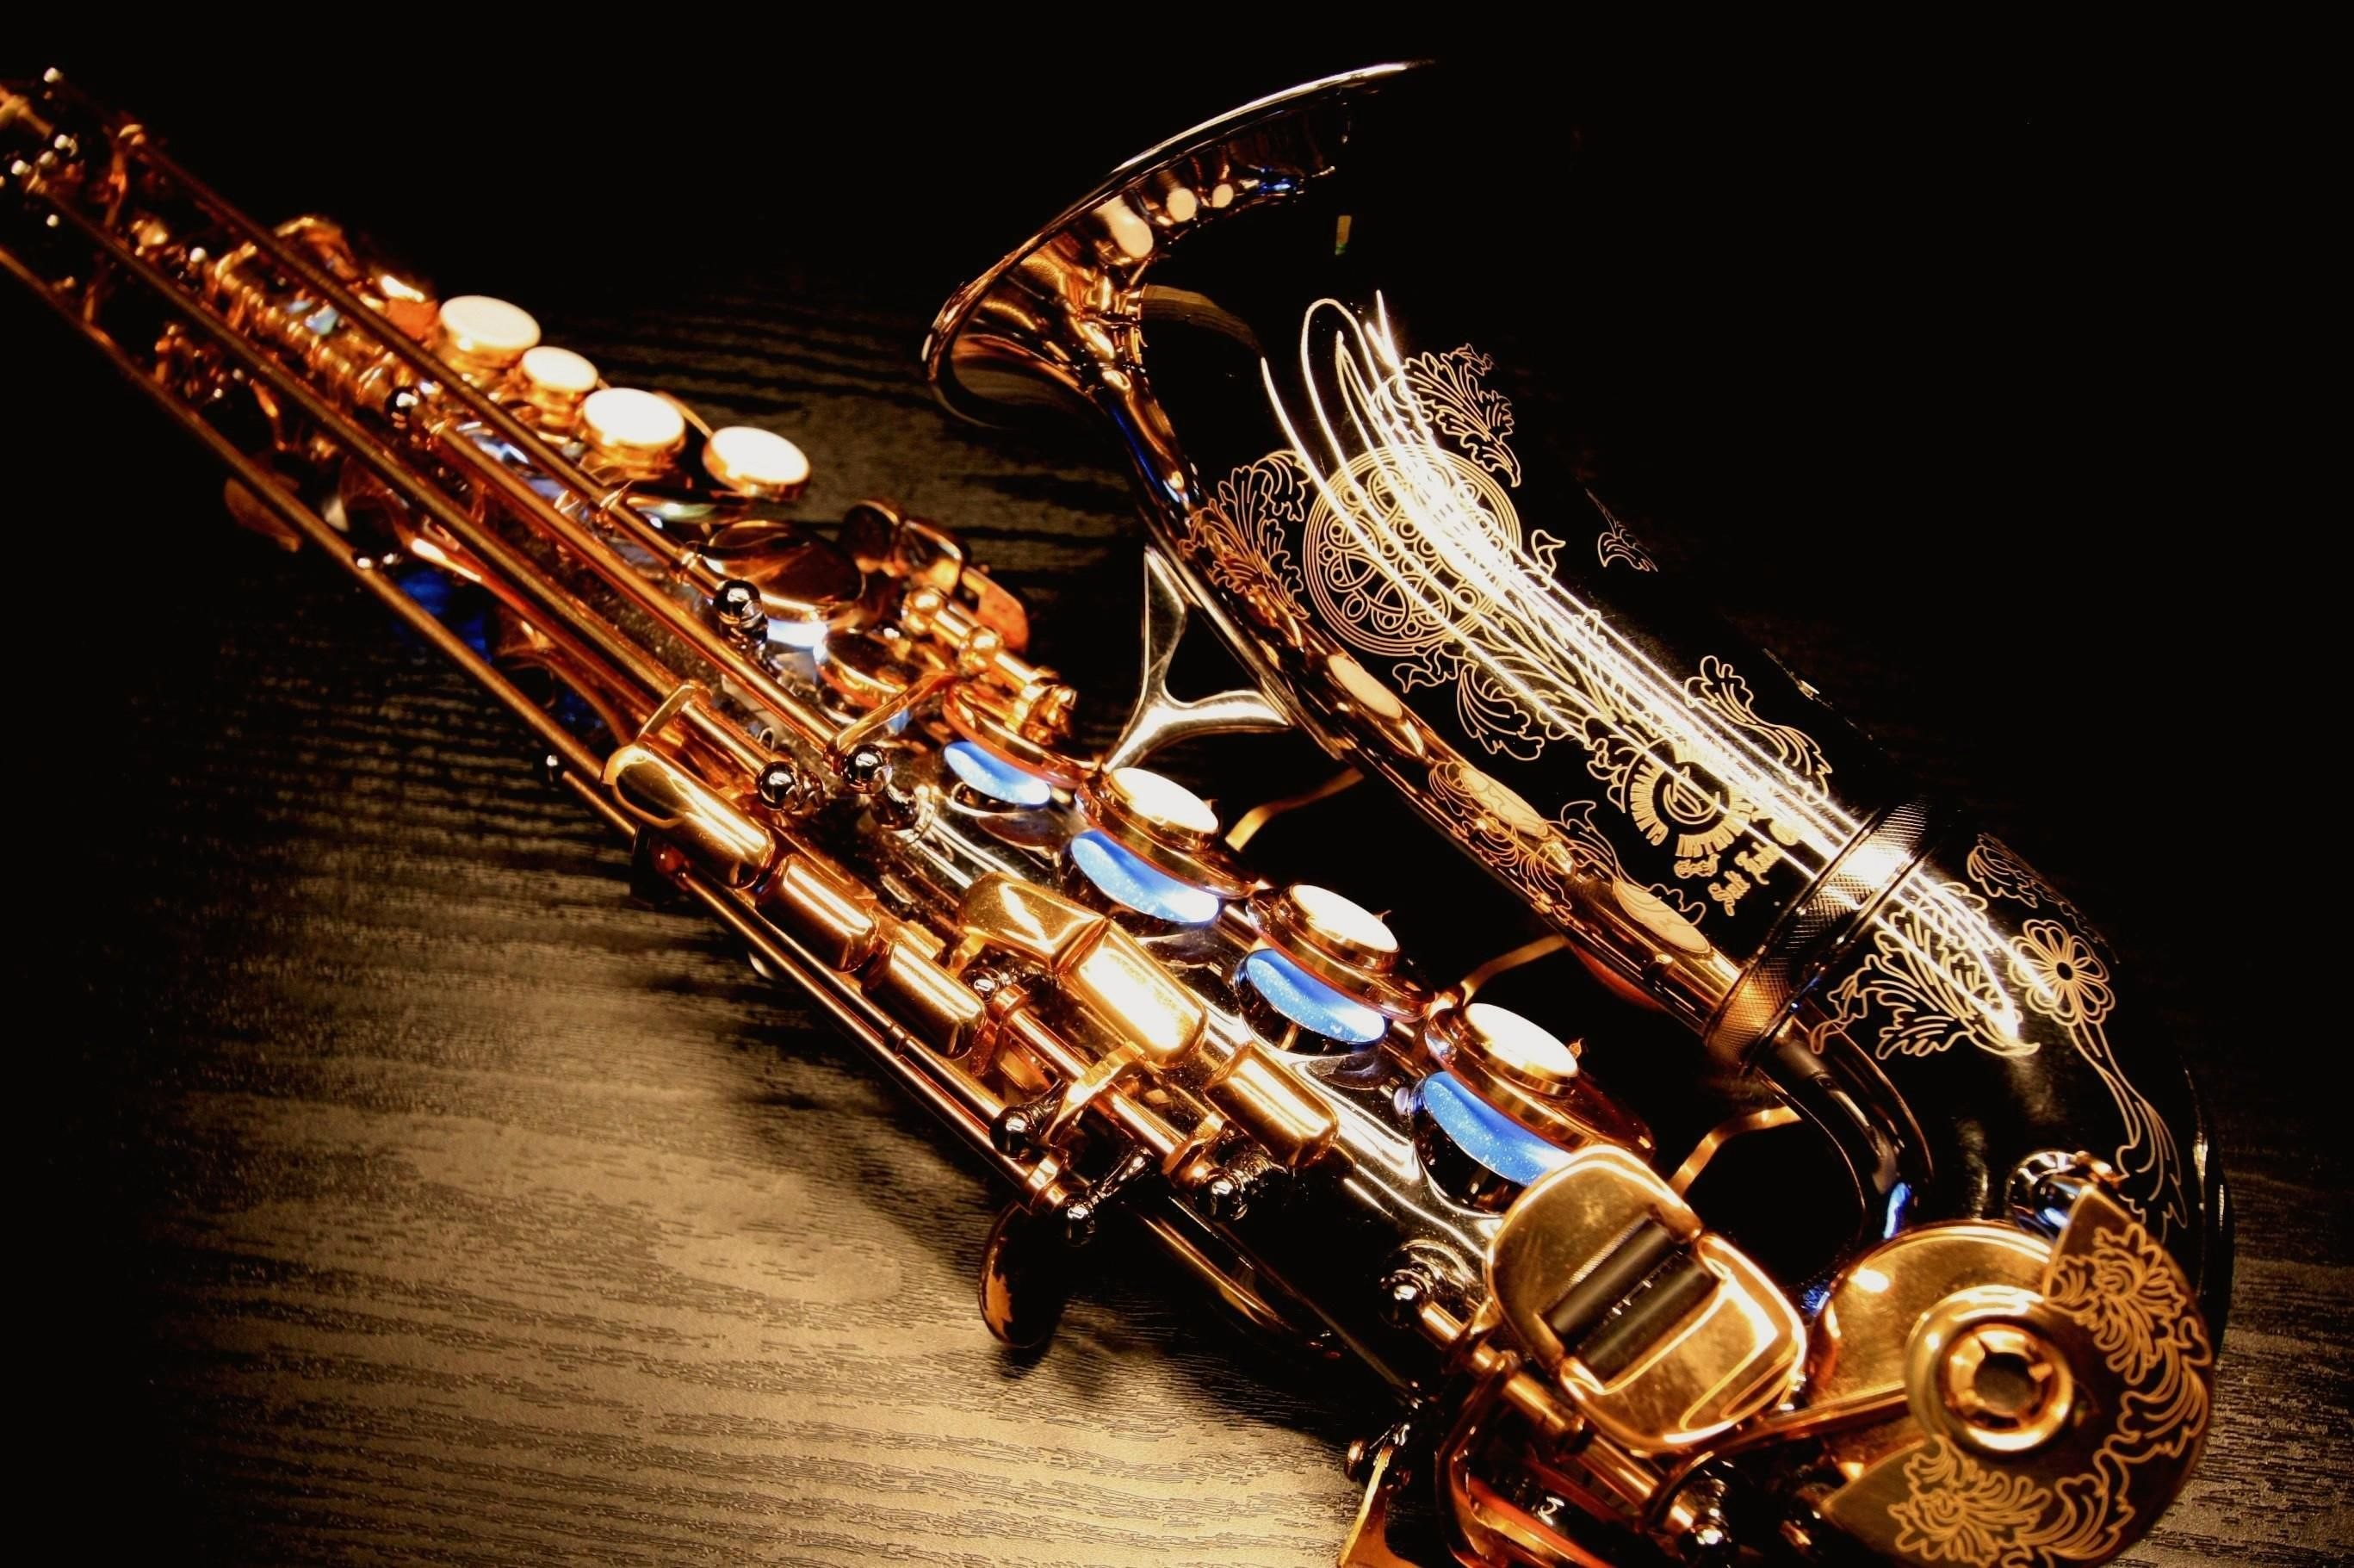 Saxophone Wallpaper Phone For Desktop Wallpaper 2734 x 1821 px 1.46